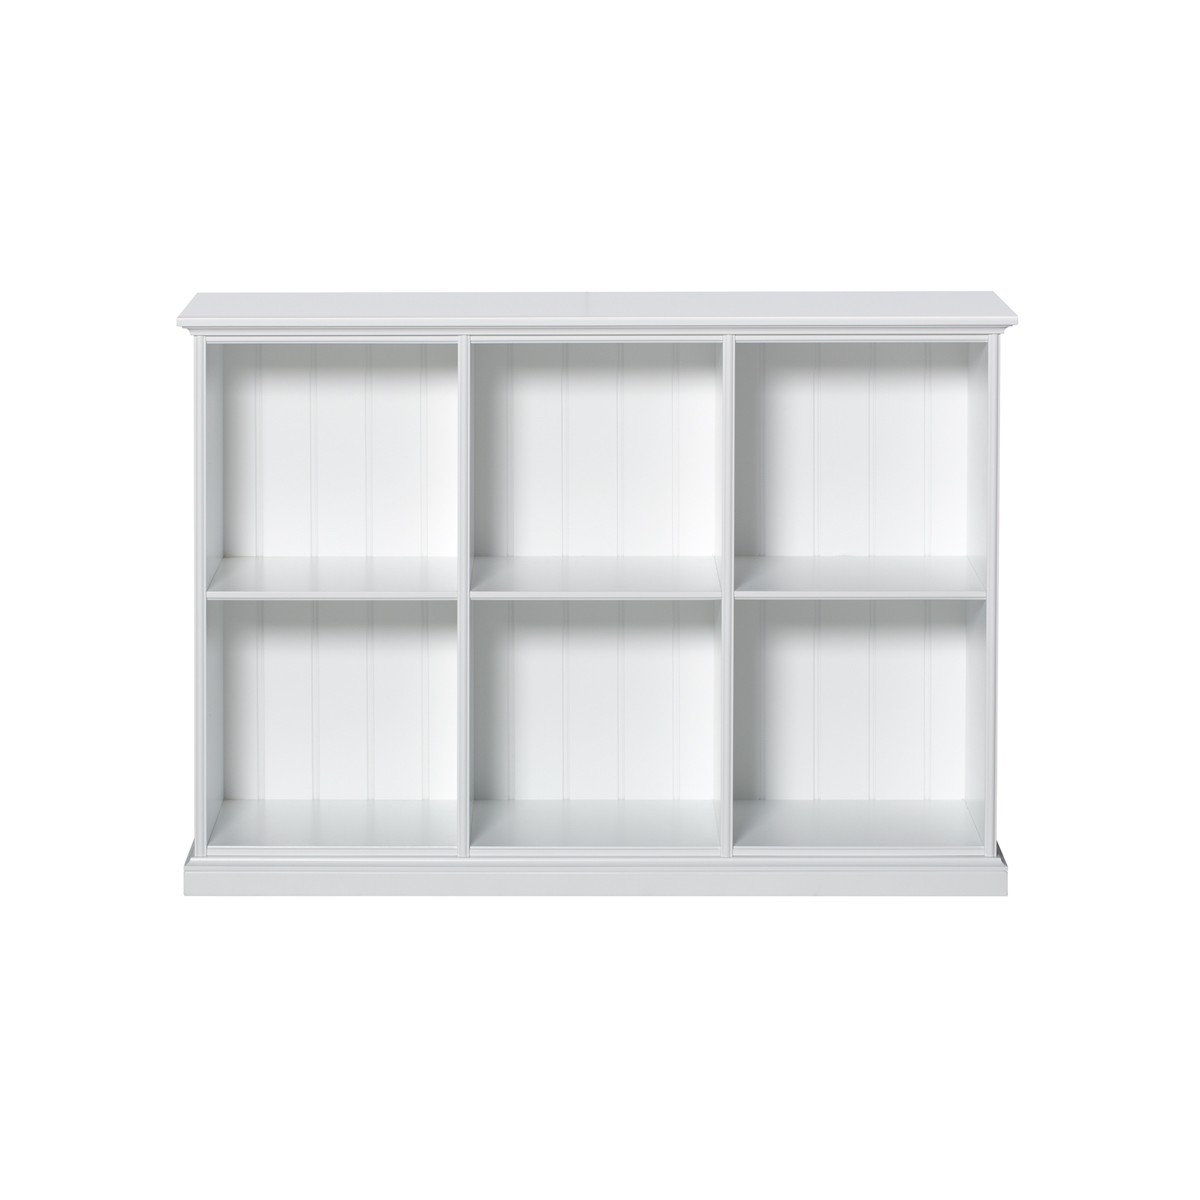 Etagère Seaside 6 compartiments Blanc Oliver Furniture